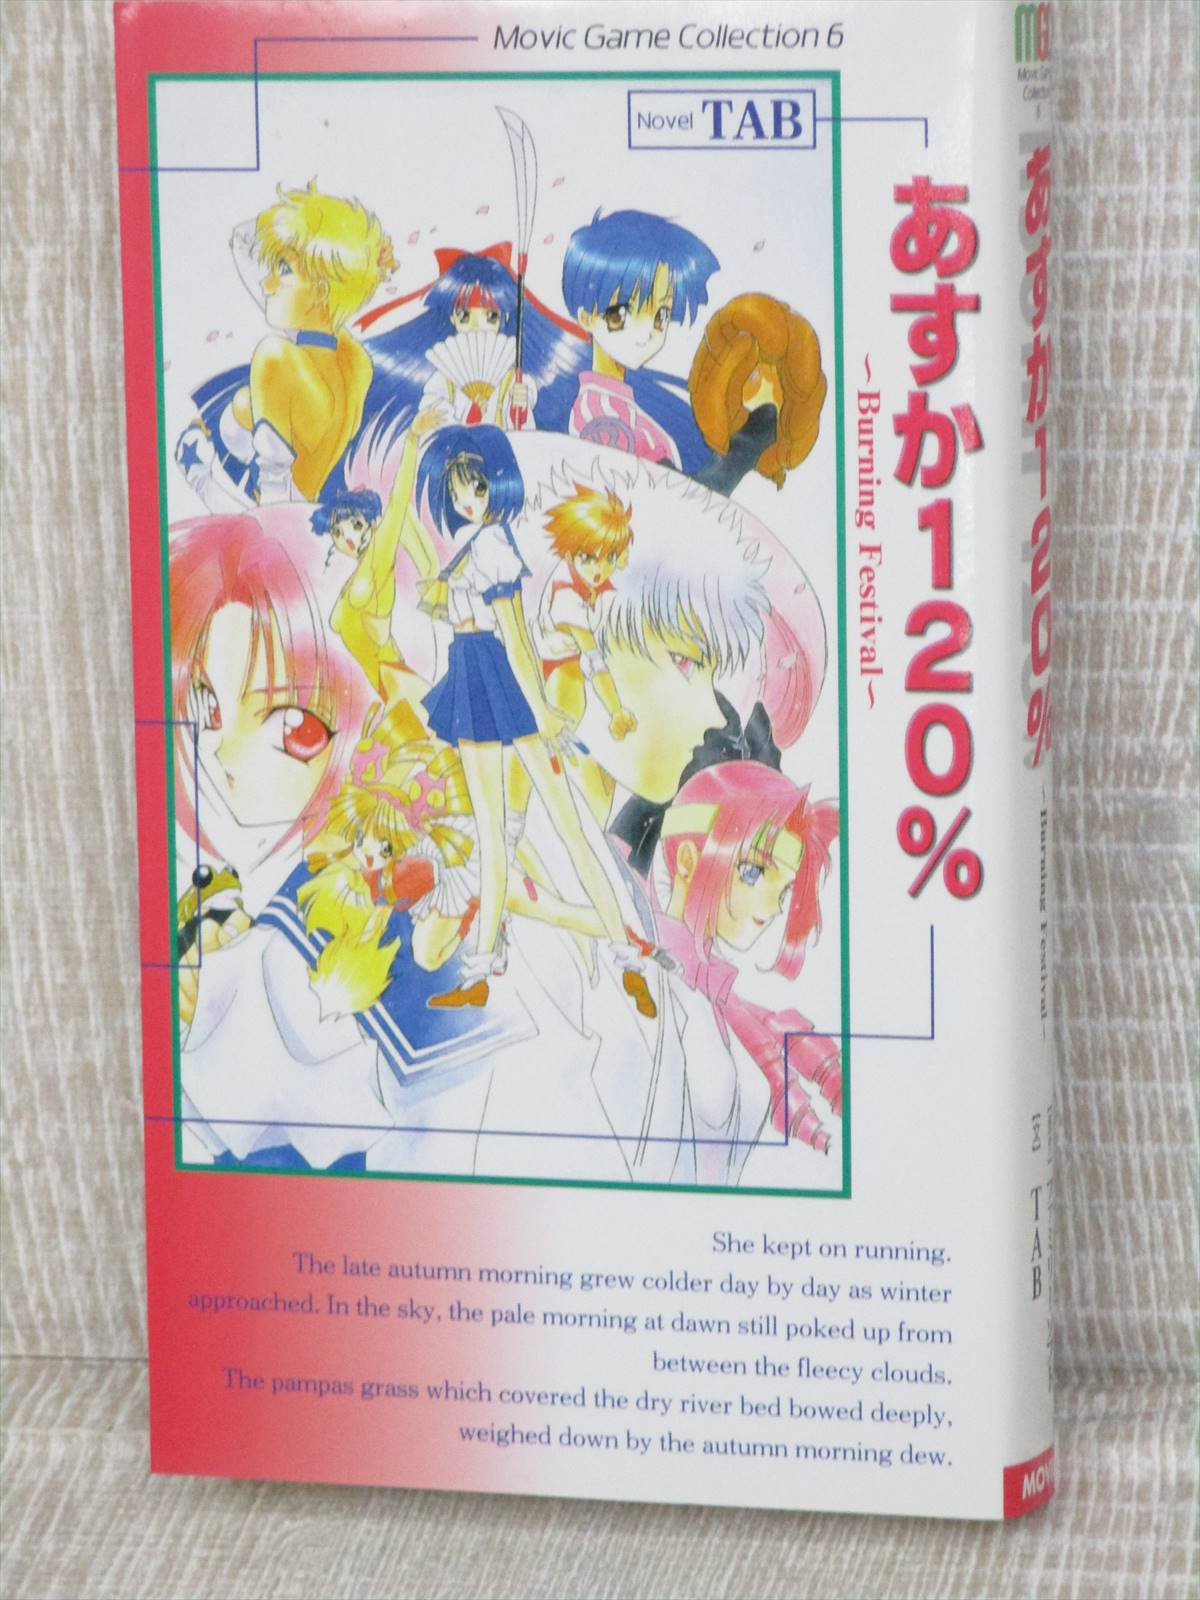 Details about ASUKA 120% Burning Festival Novel Japan 1998 Book MV35